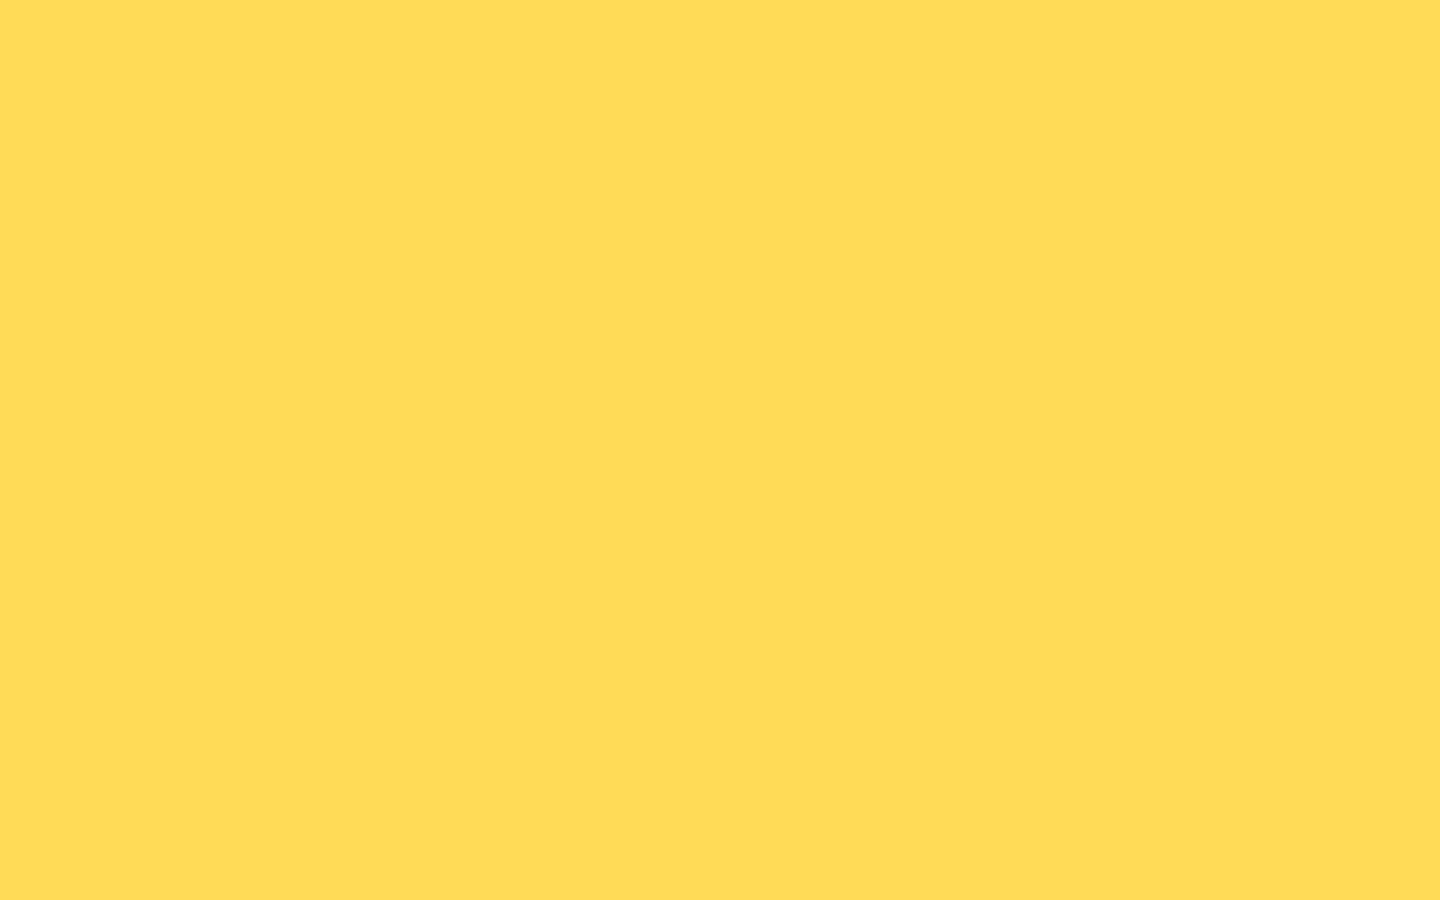 1440x900 Mustard Solid Color Background